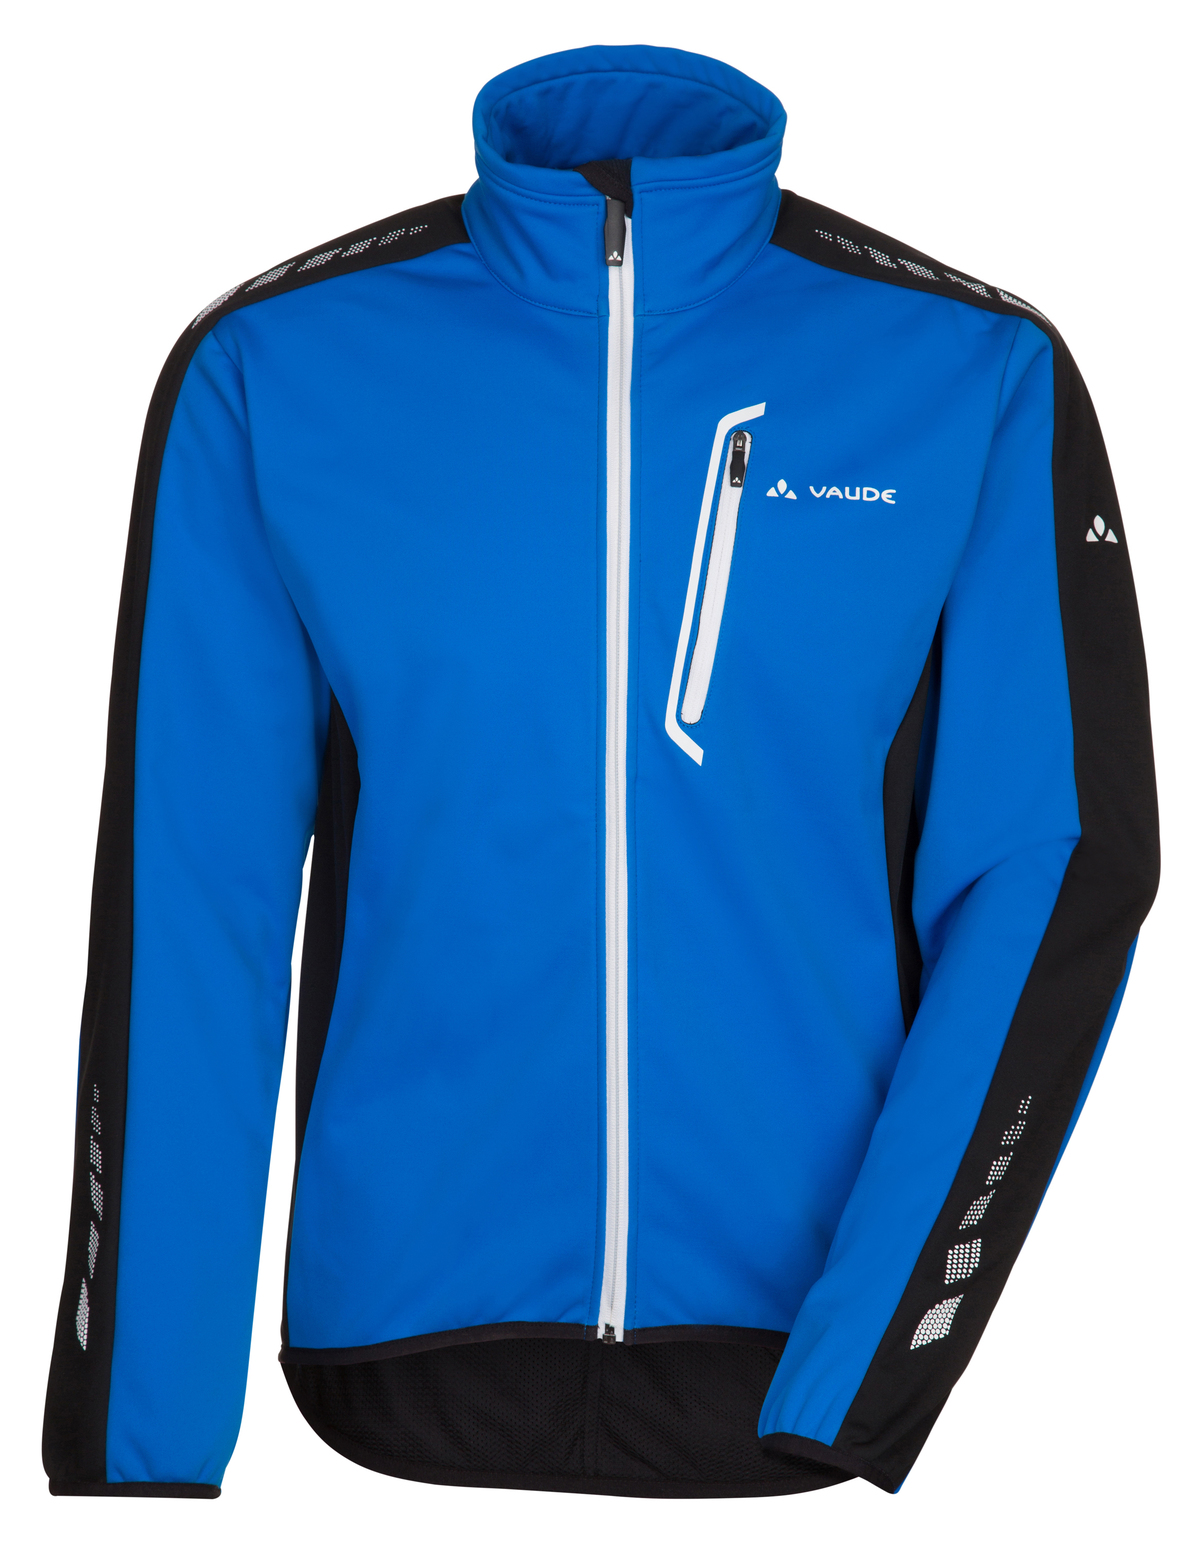 VAUDE Men´s Posta Softshell Jacket IV hydro blue Größe L - schneider-sports